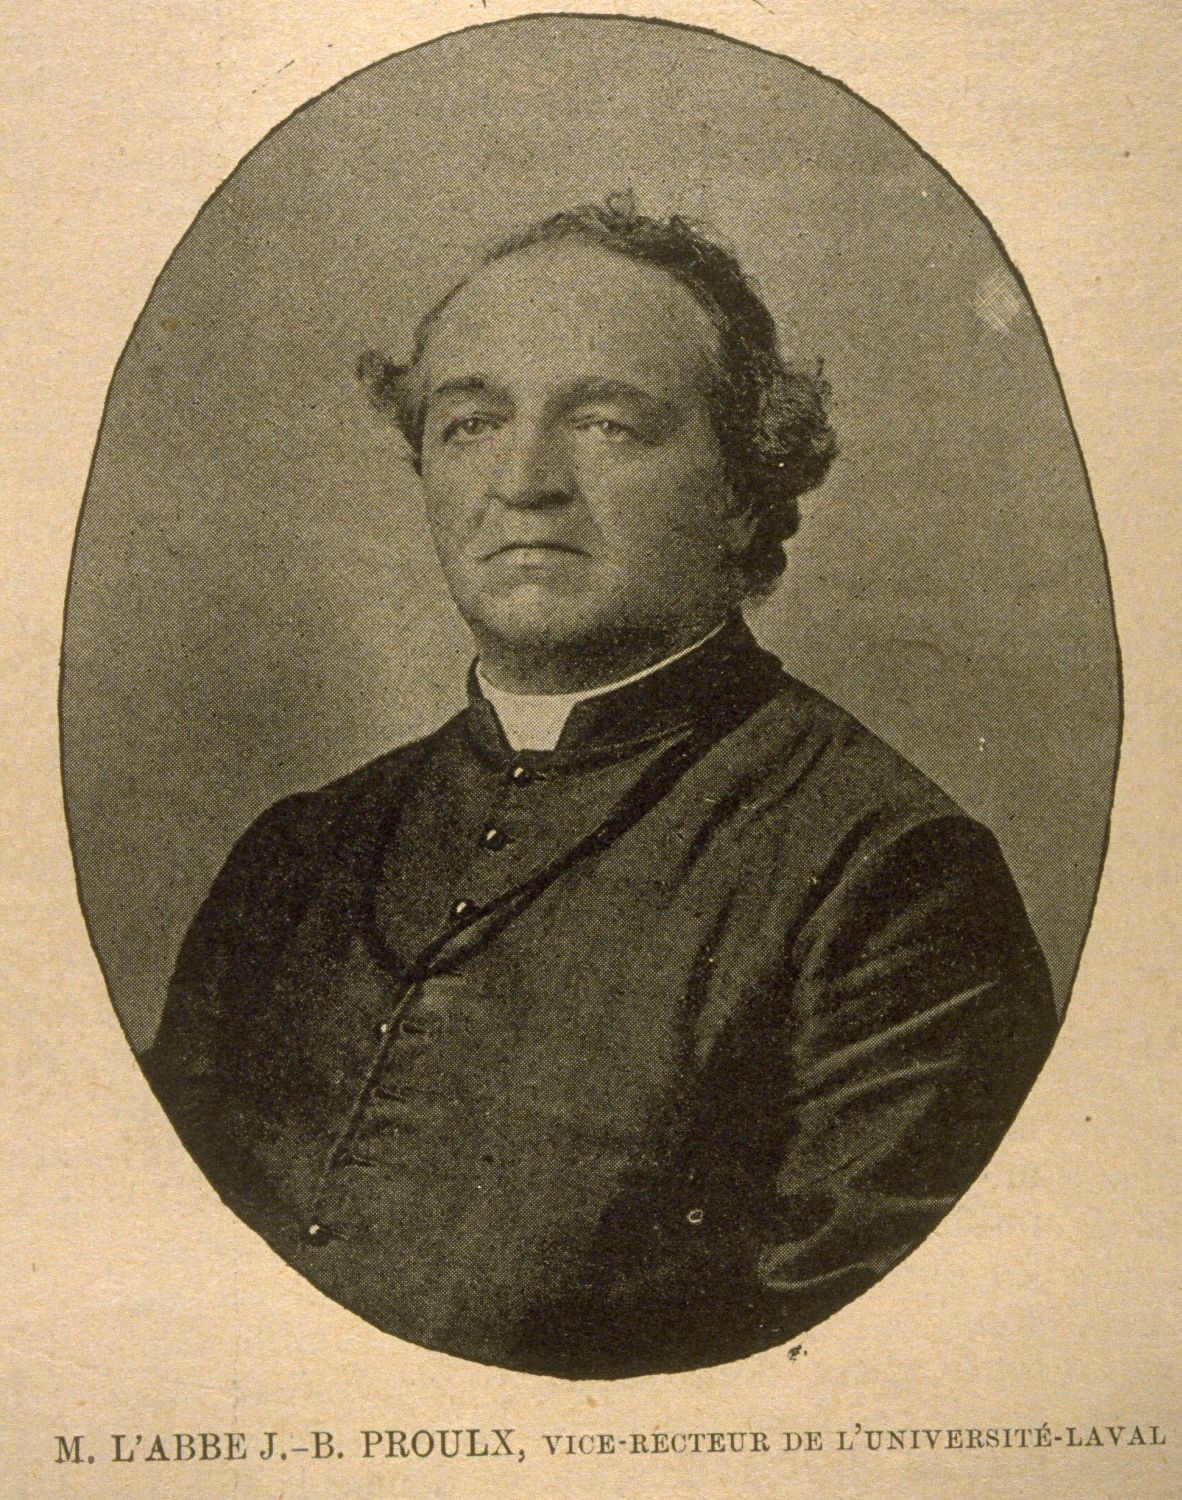 PROULX, JEAN-BAPTISTE, Roman Catholic priest and author